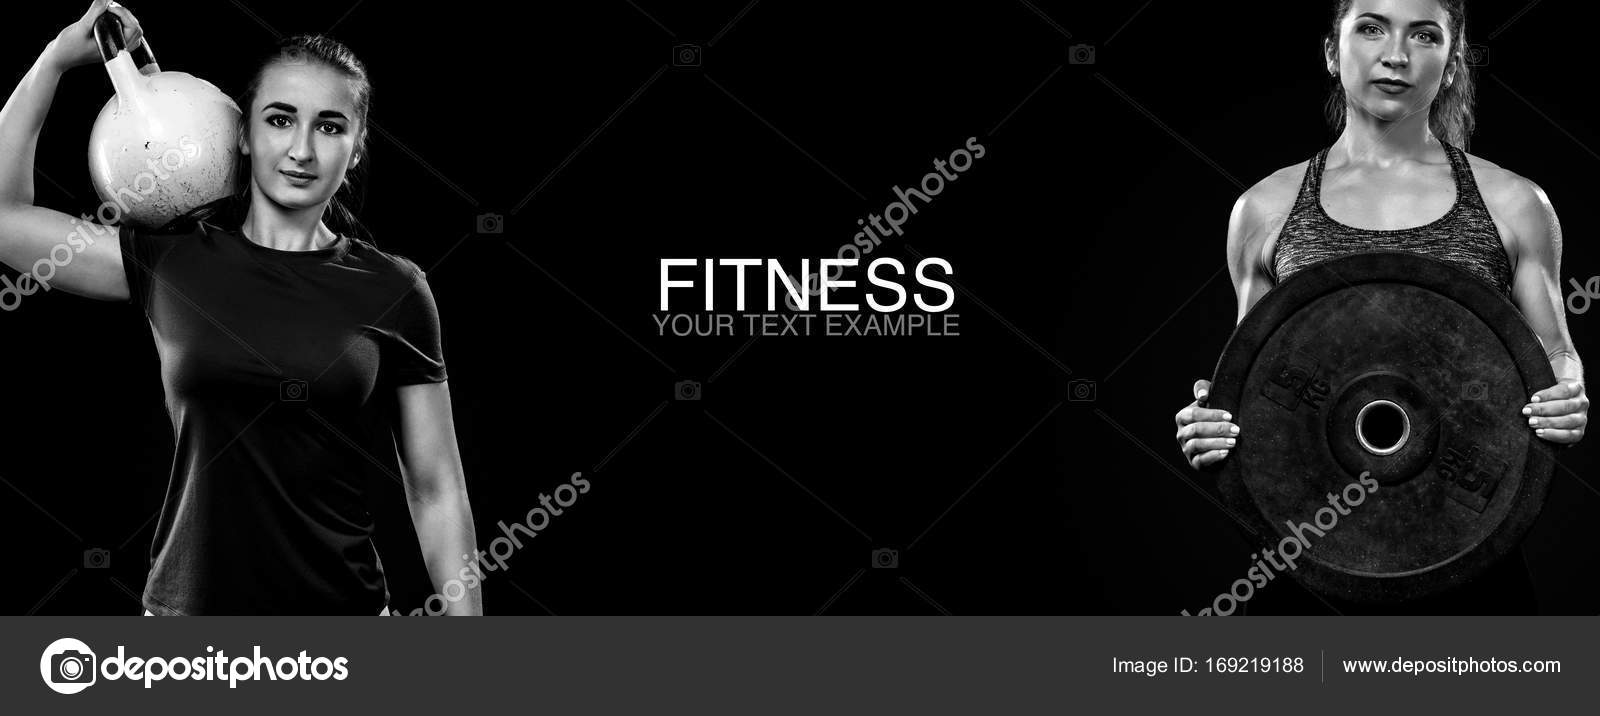 Female Fitness Motivation Wallpaper Sporty And Fit Women